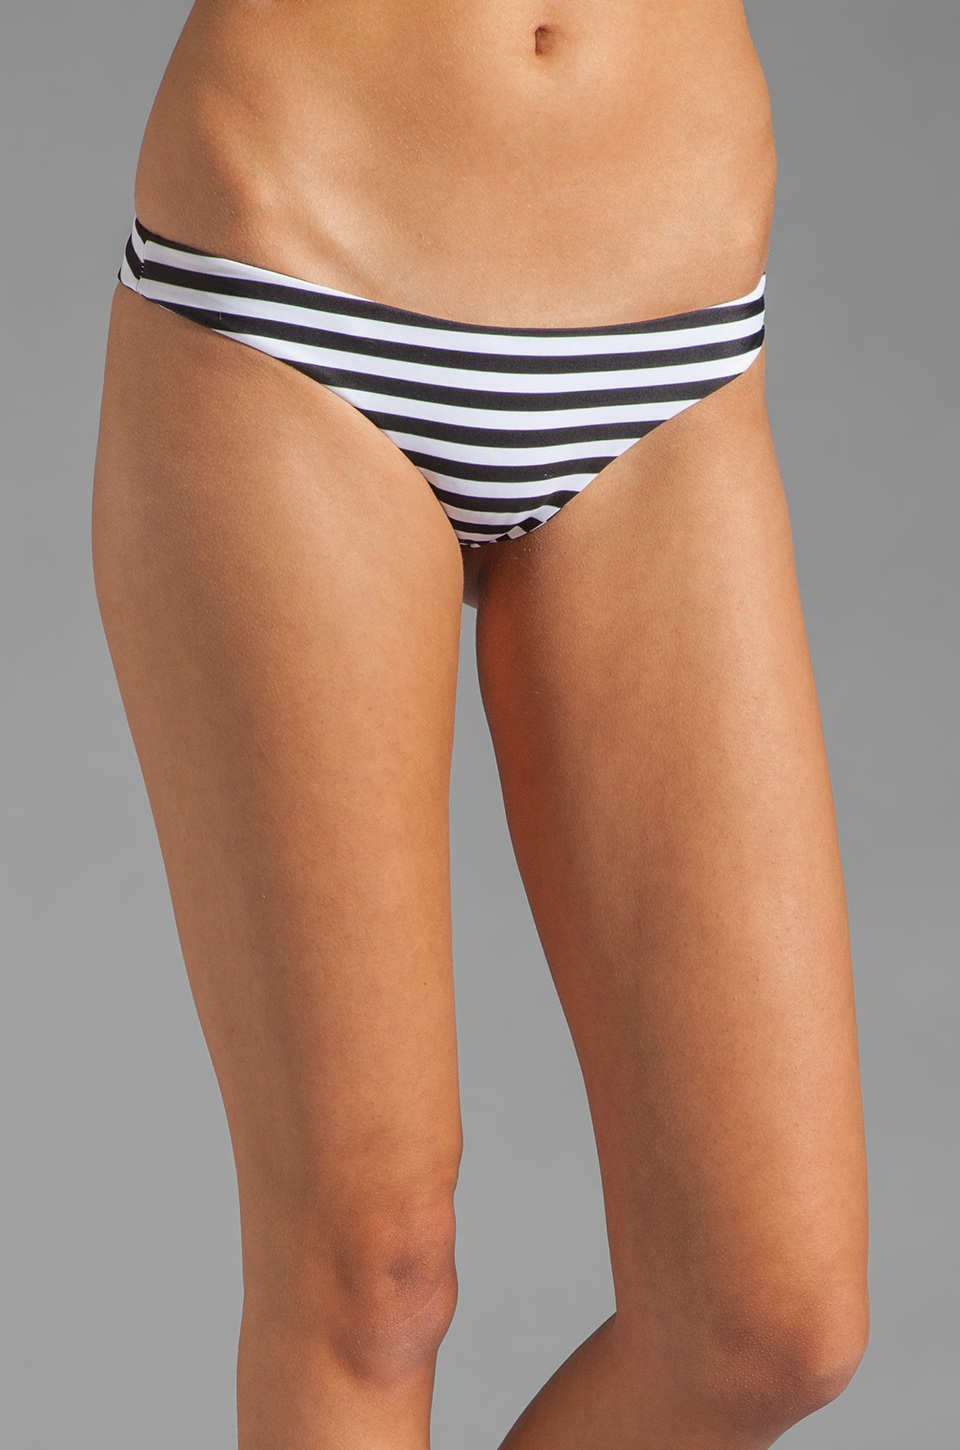 MIKOH Lahaina Extra Skimpy Bottom in Swell Lines